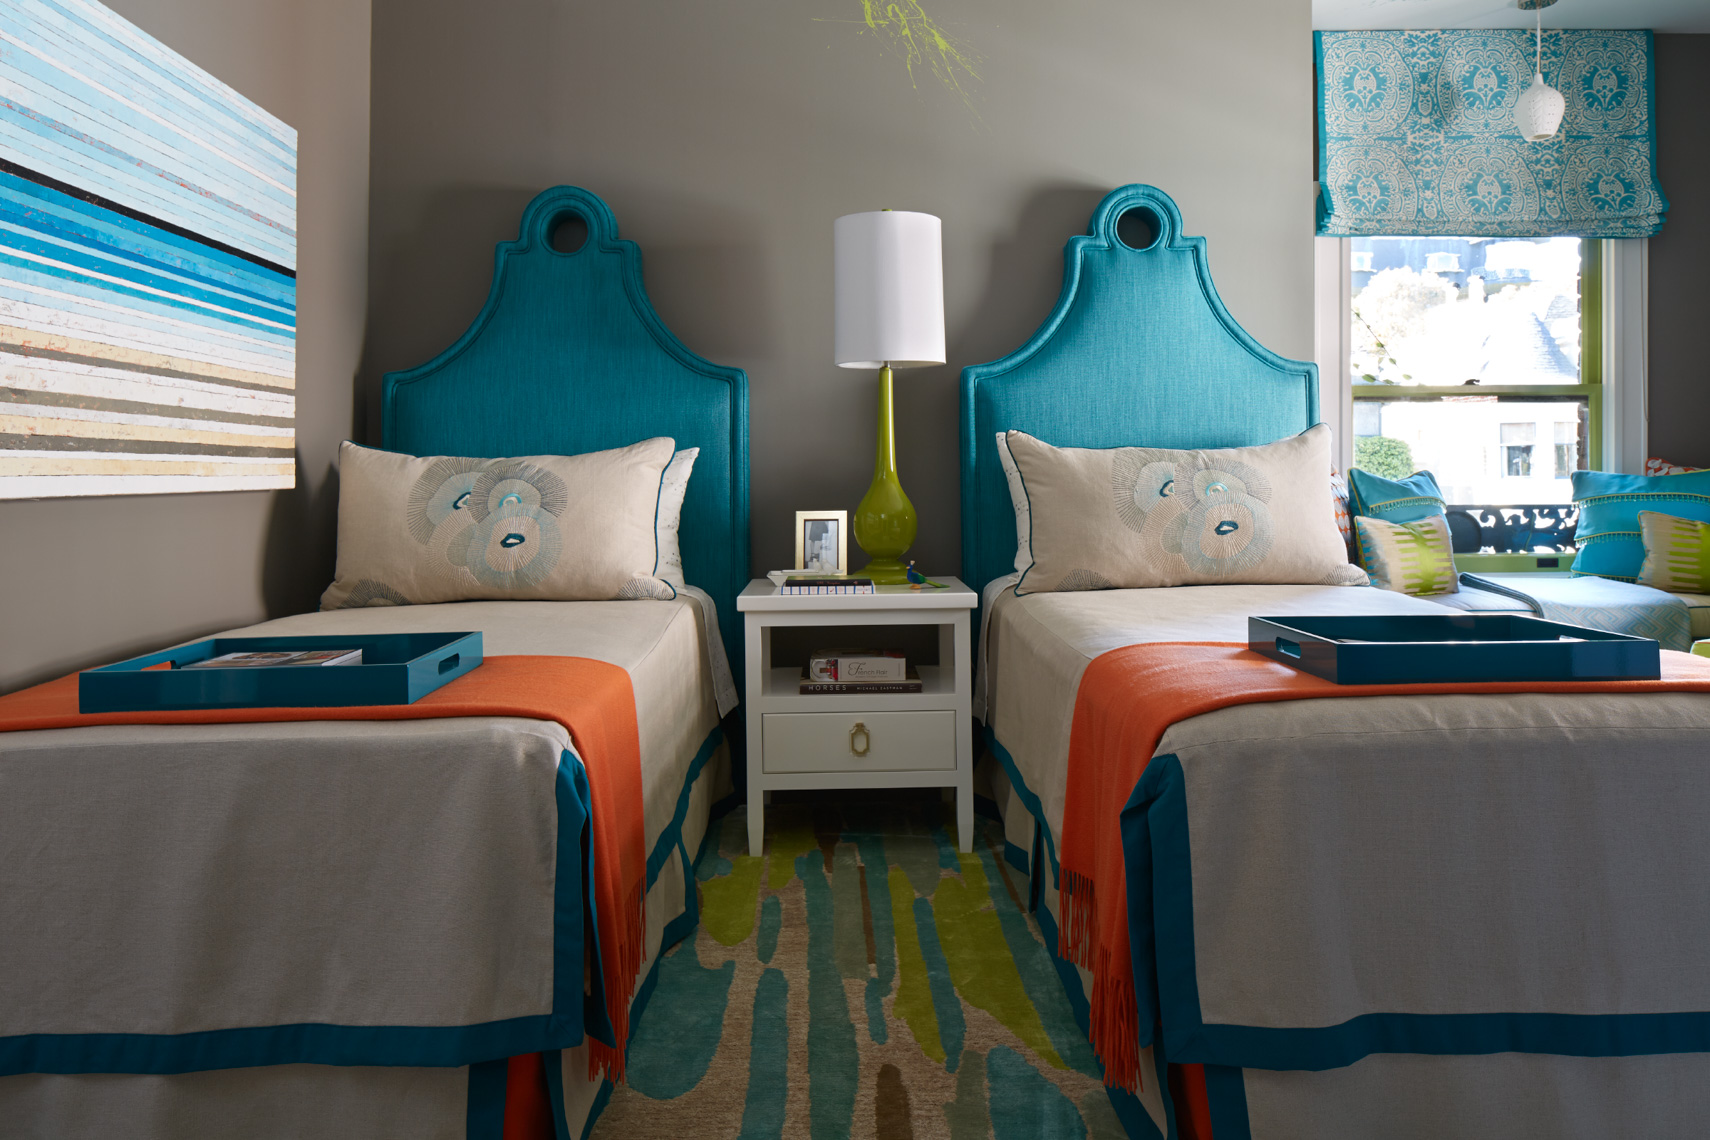 set of twin beds with blue headboards and bedding with orange blankets San Francisco interior photographer